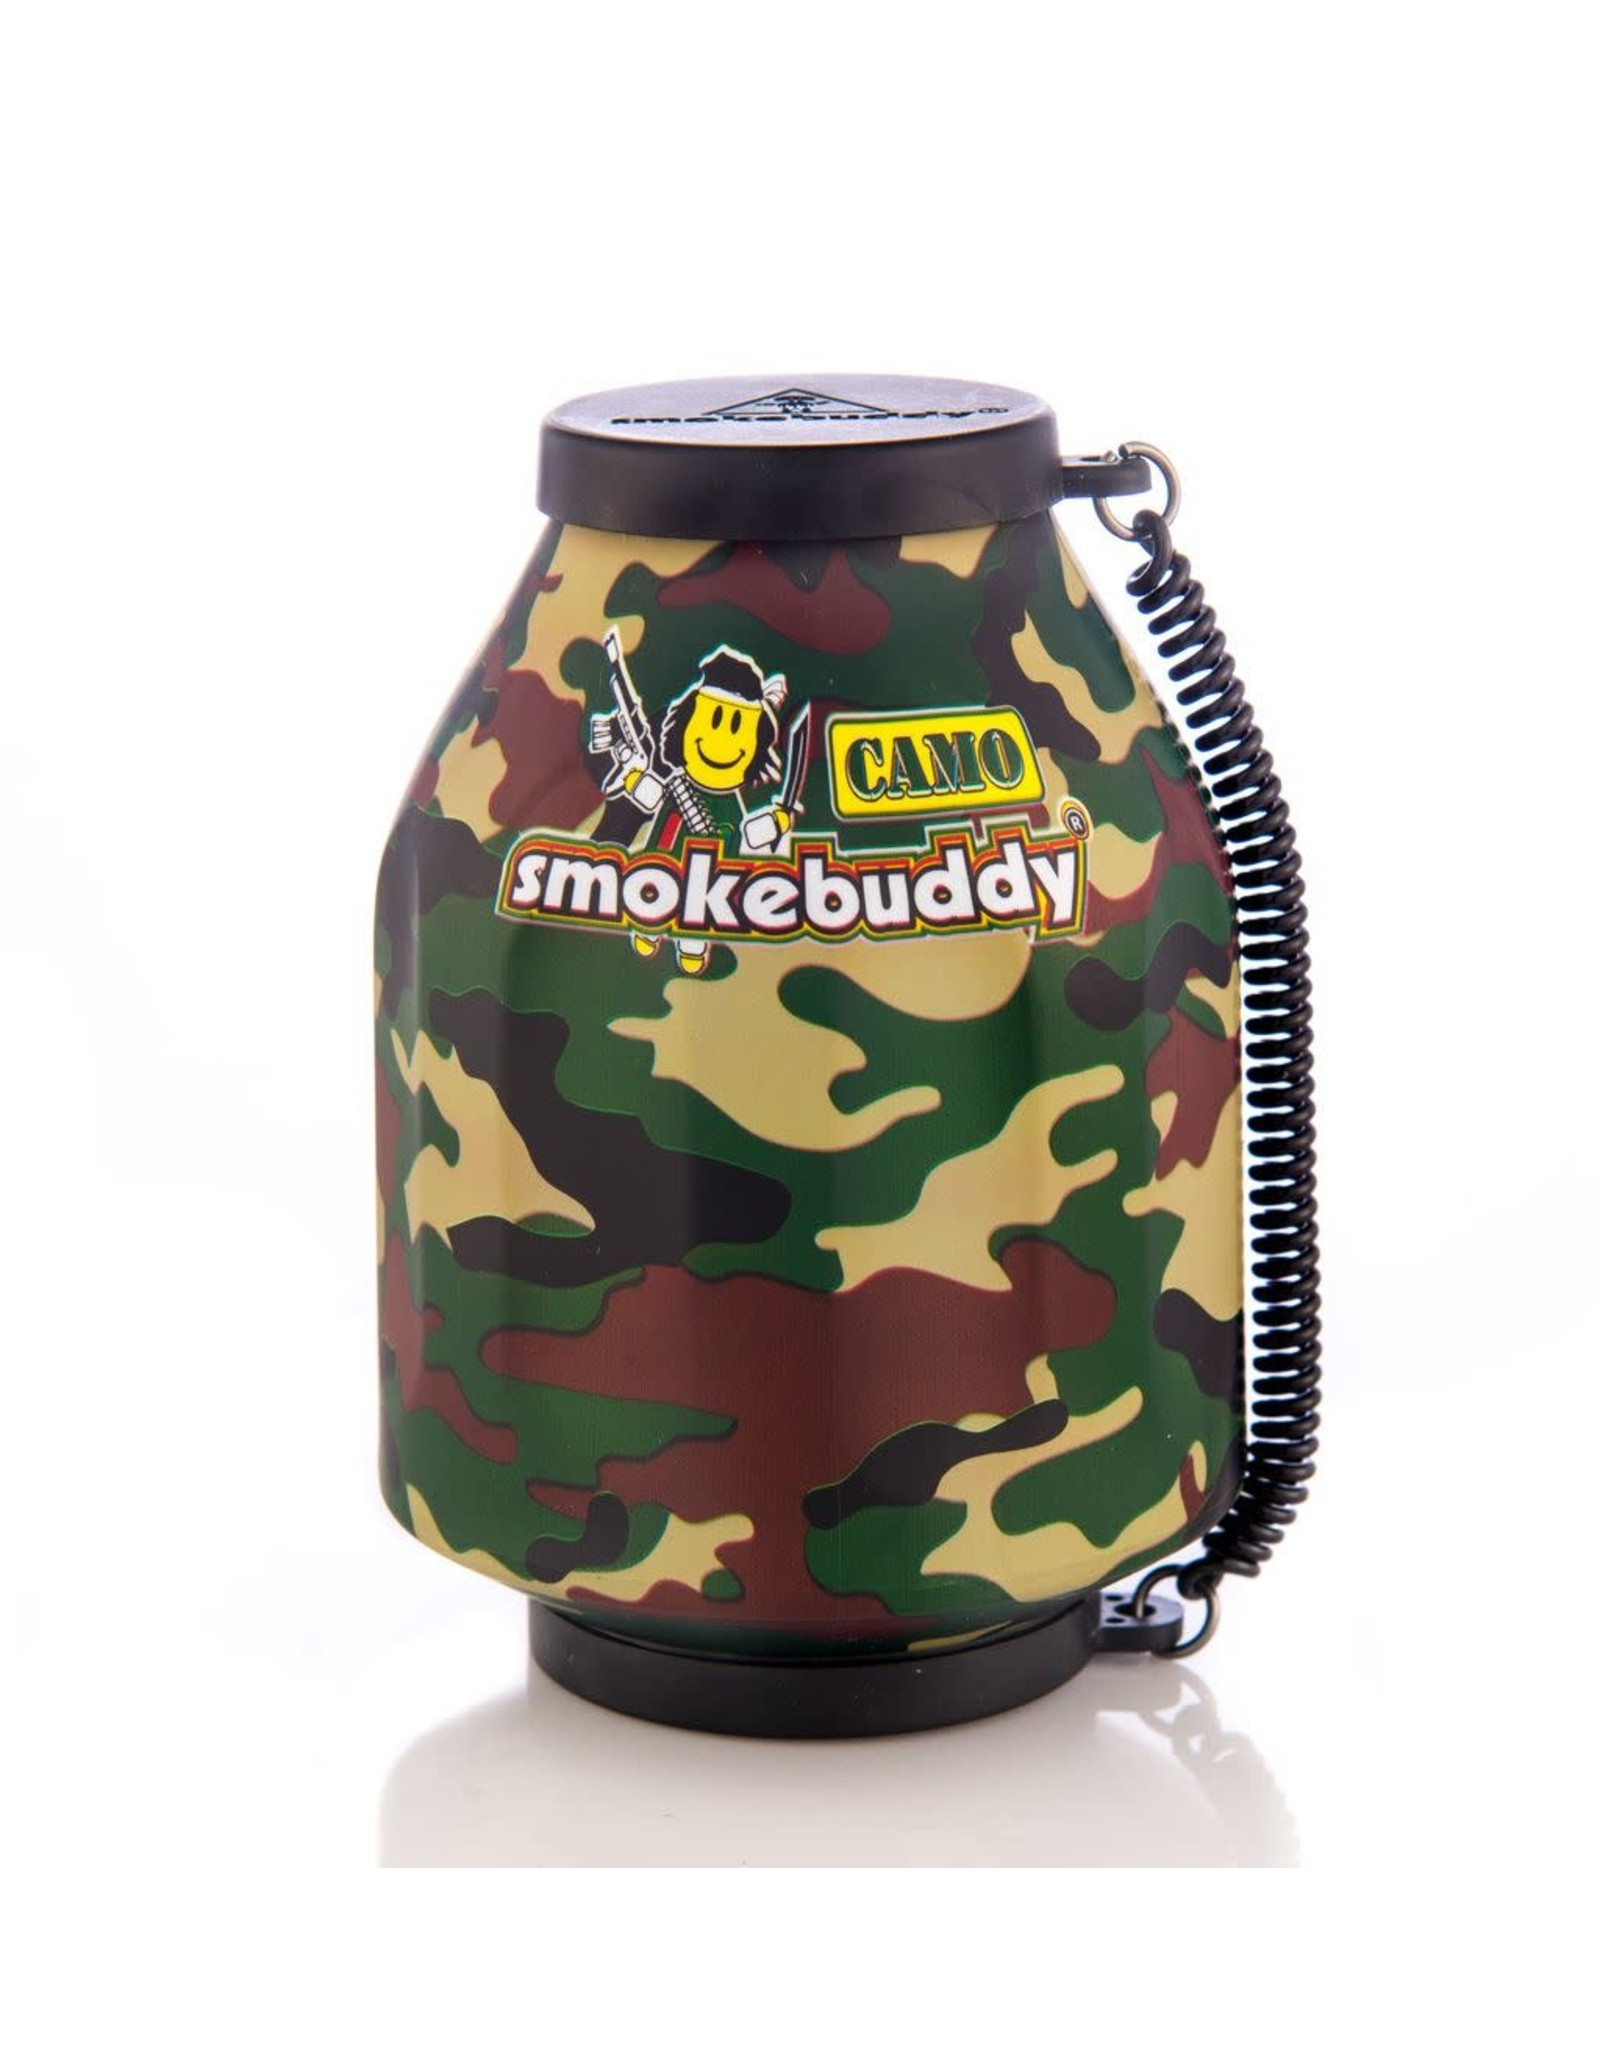 smoke buddy Camo Smokebuddy Original Personal Air Filter